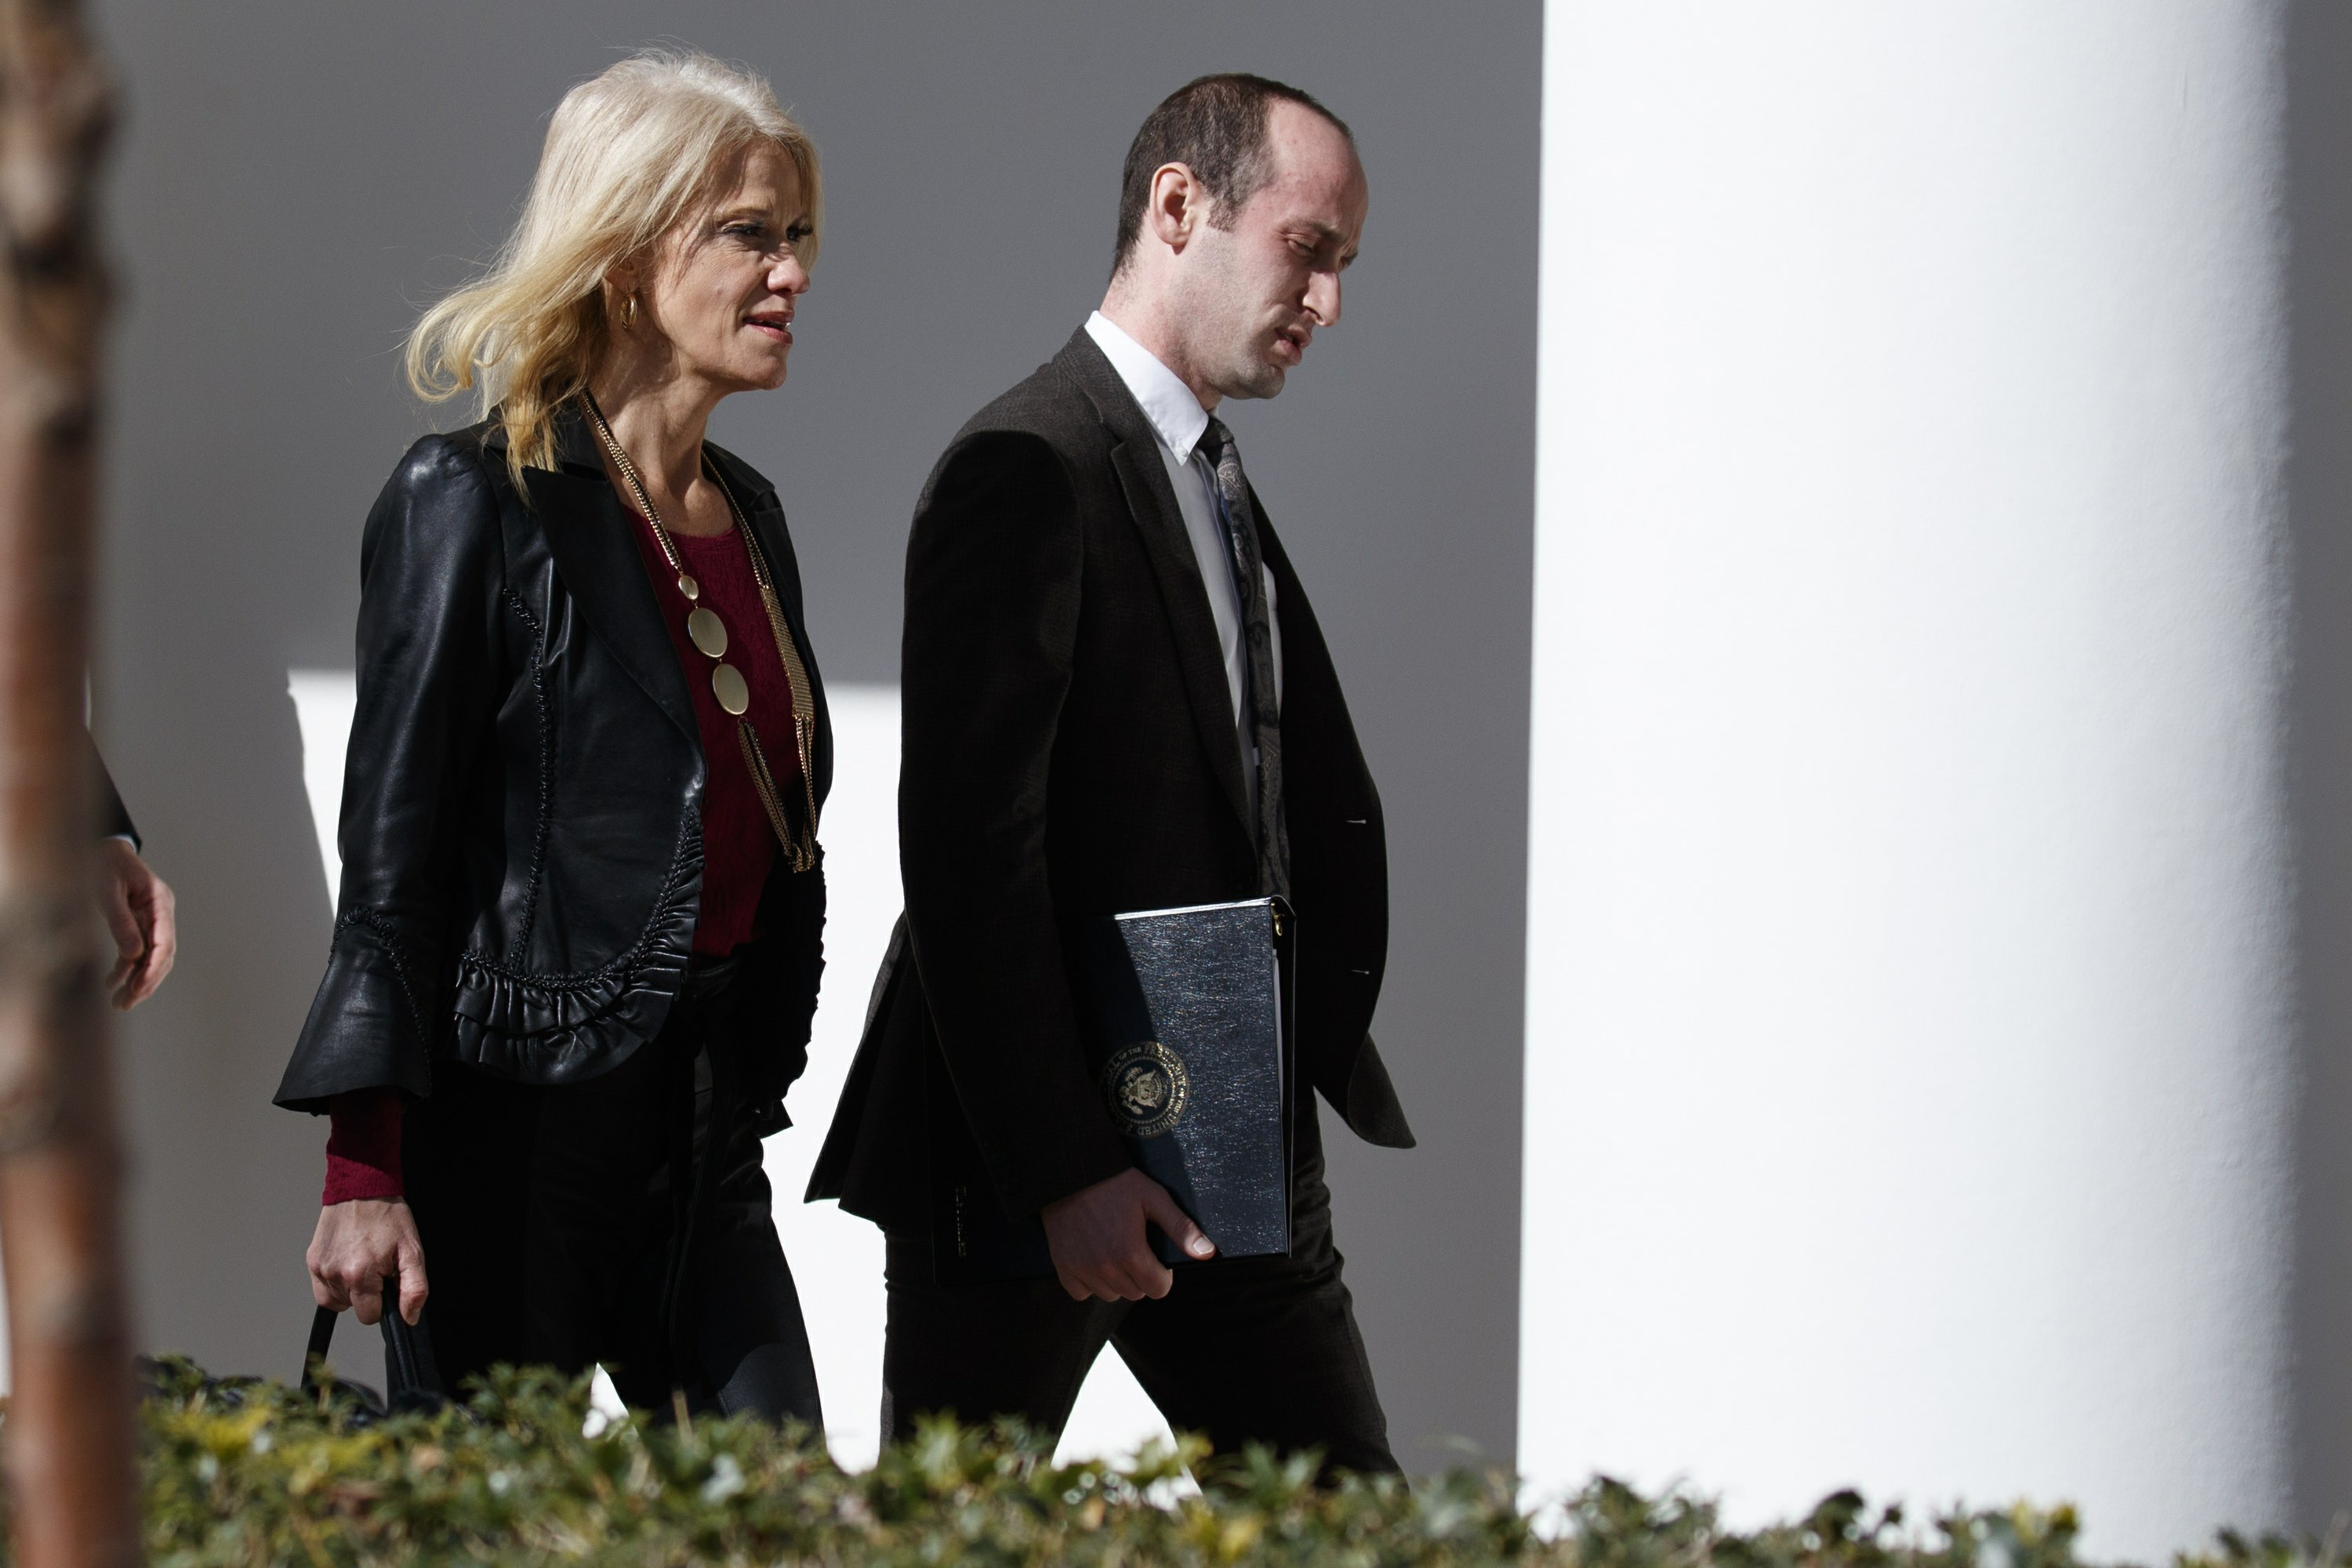 AP FACT CHECK: Trump aide pushes false story of vote fraud